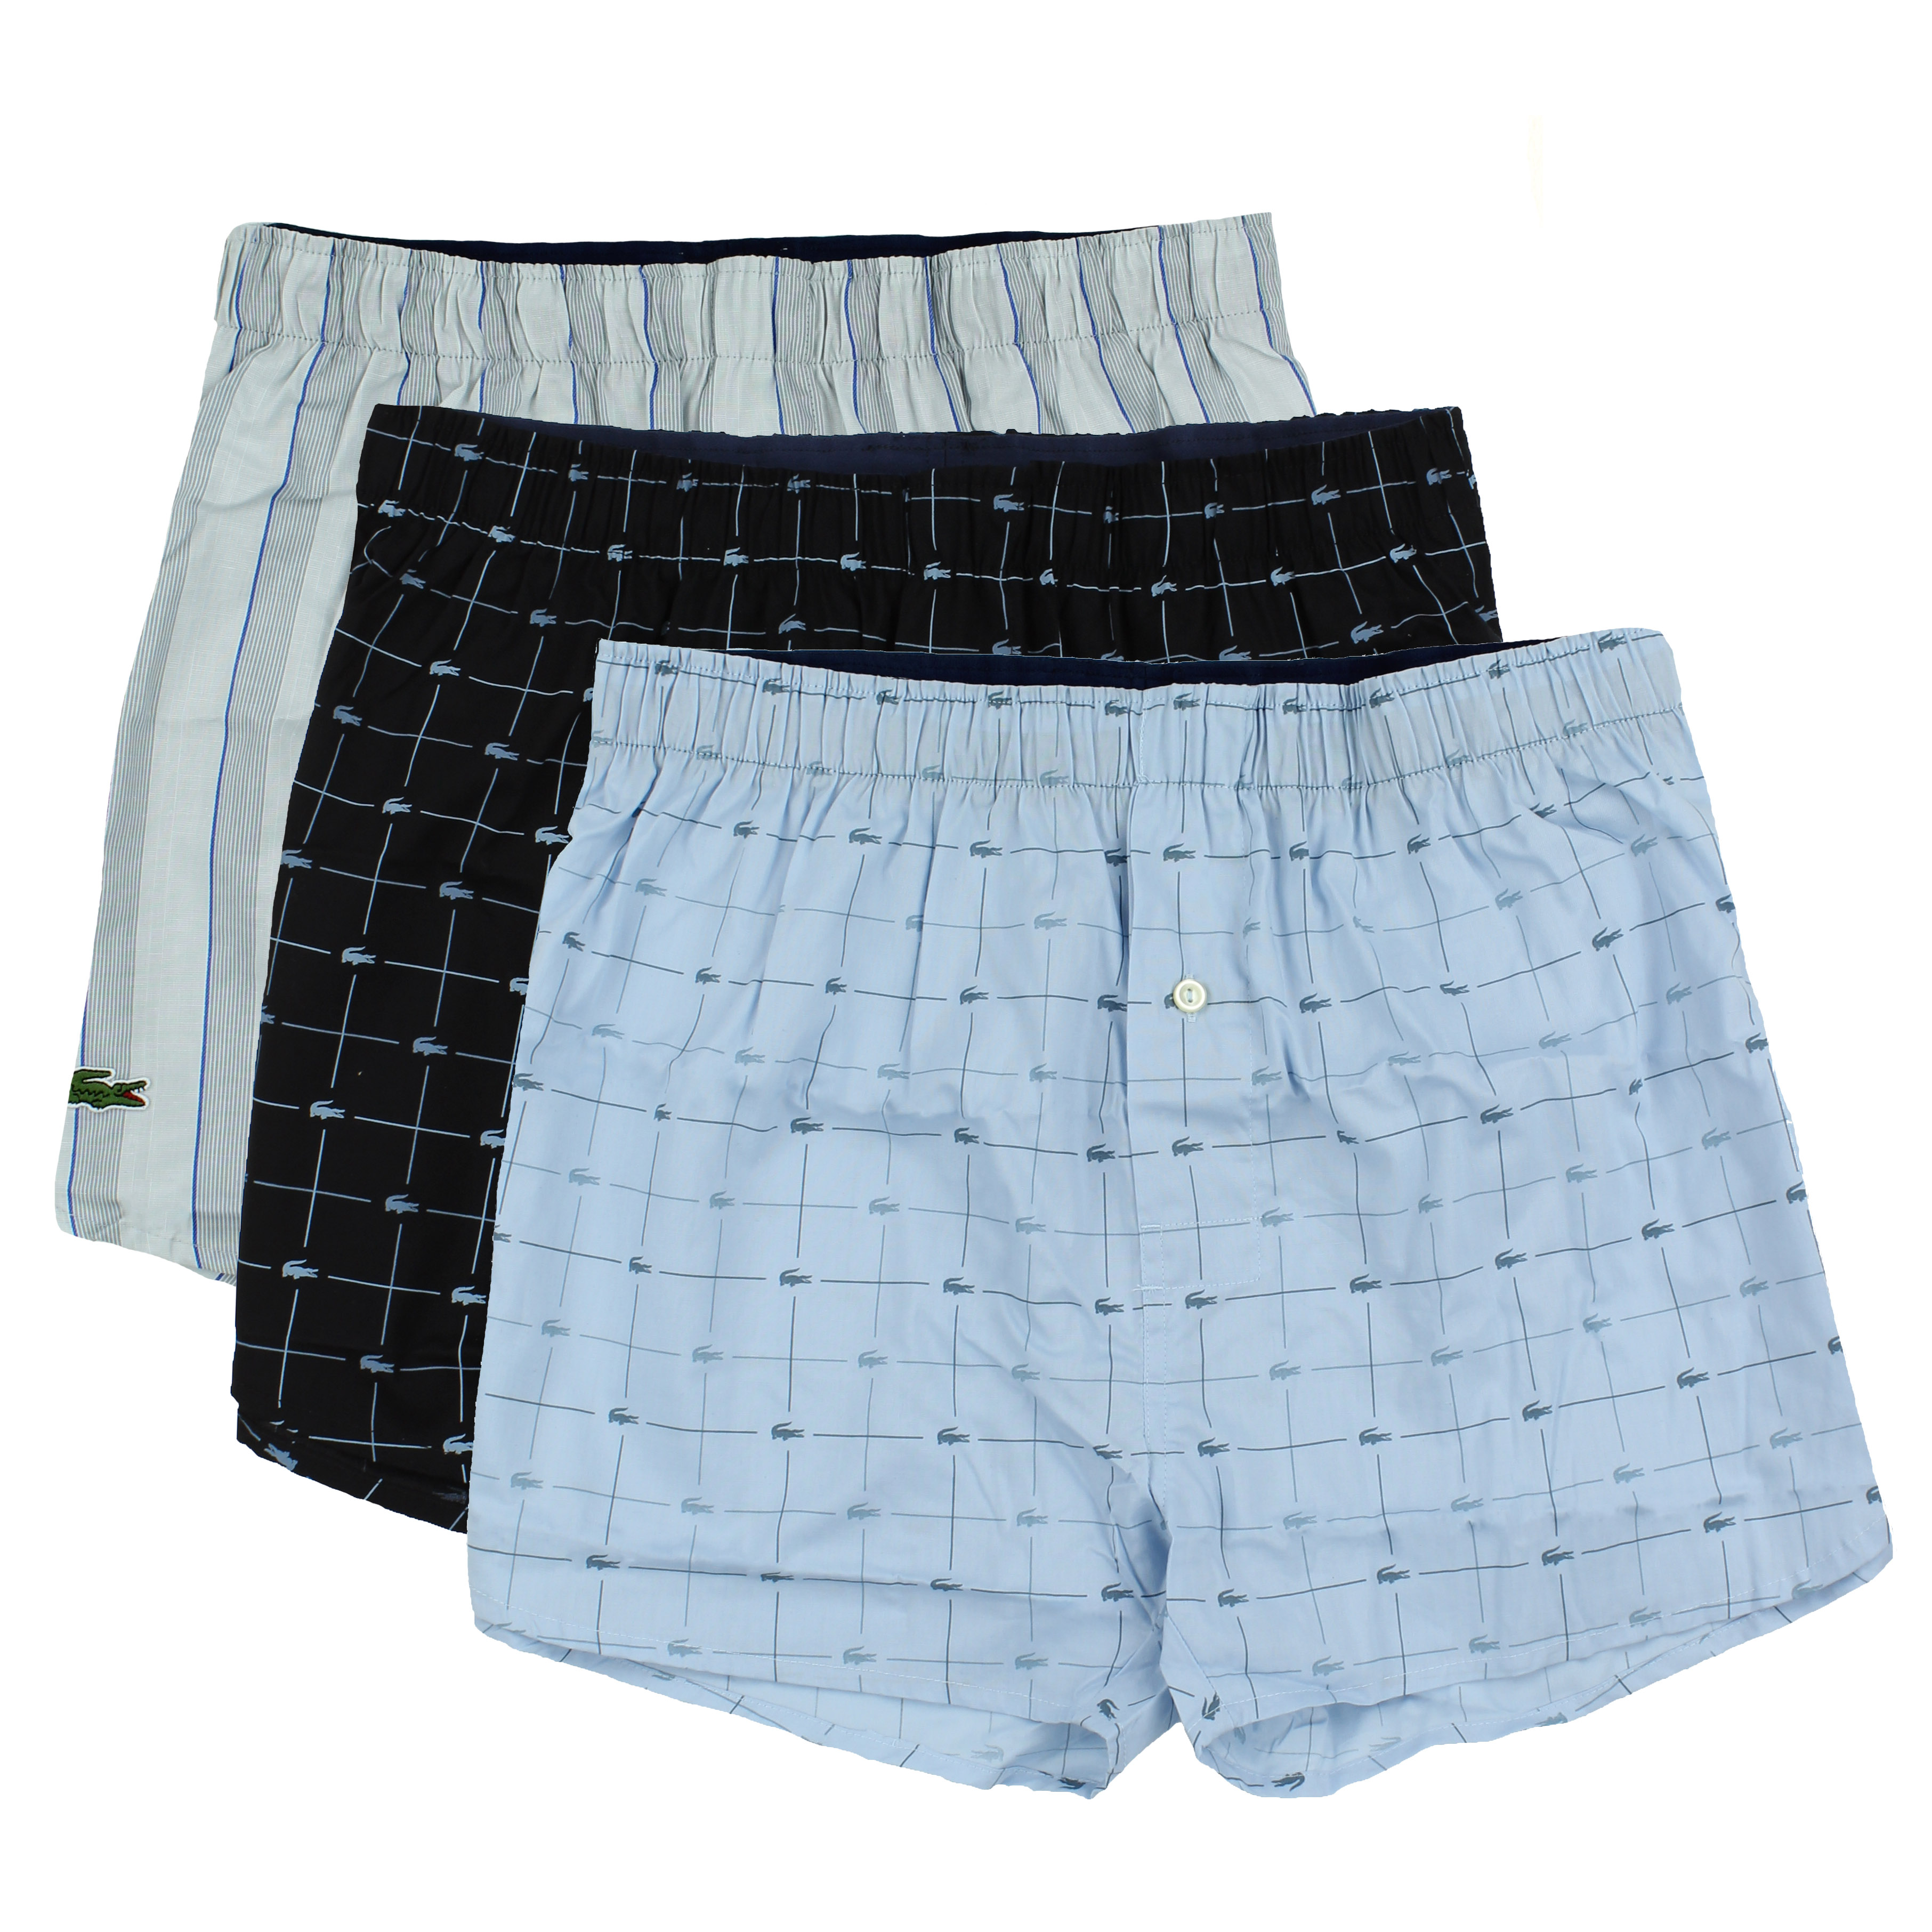 fcdbfd3aa70d Lacoste Men s 3 Pack Cotton Woven Boxers